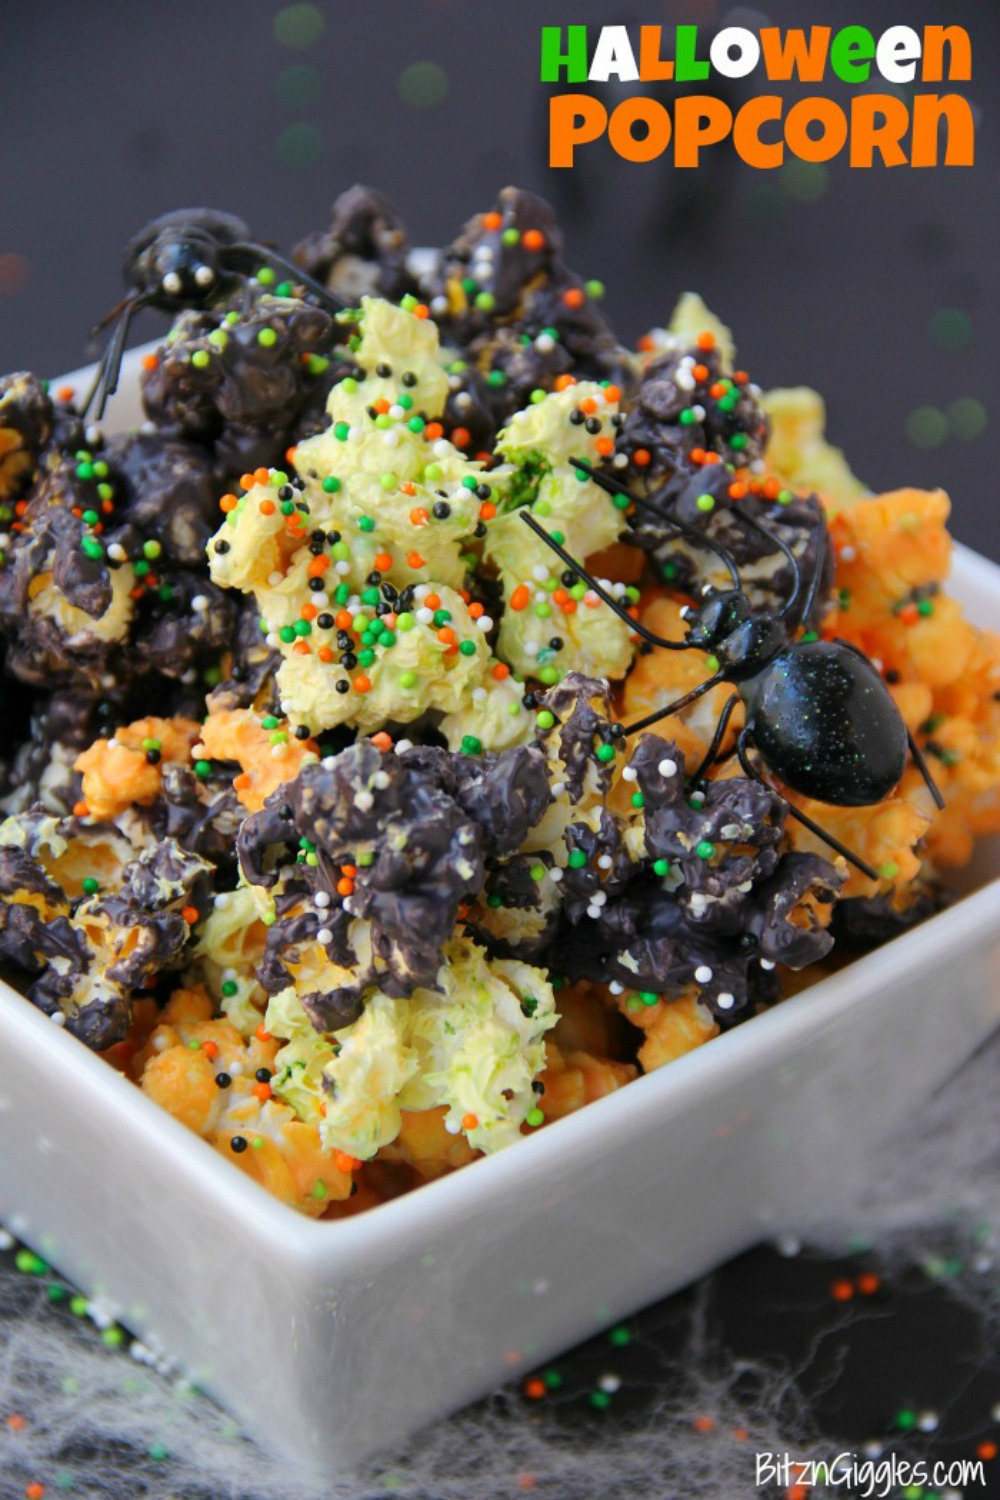 Halloween Popcorn – Candy-coated popcorn with sprinkles and a Halloween flair!